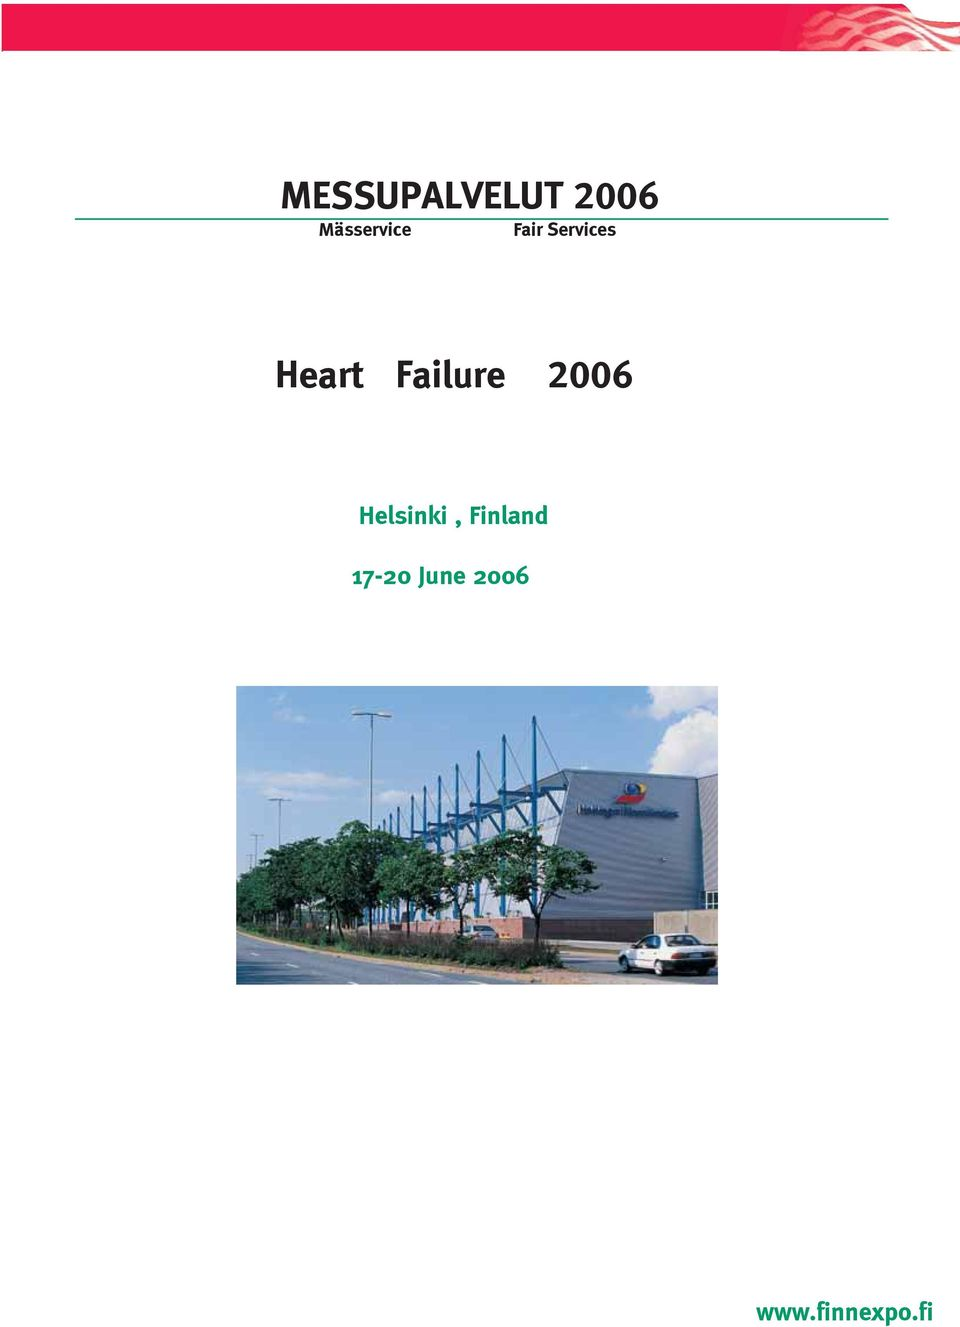 Heart Failure 2006